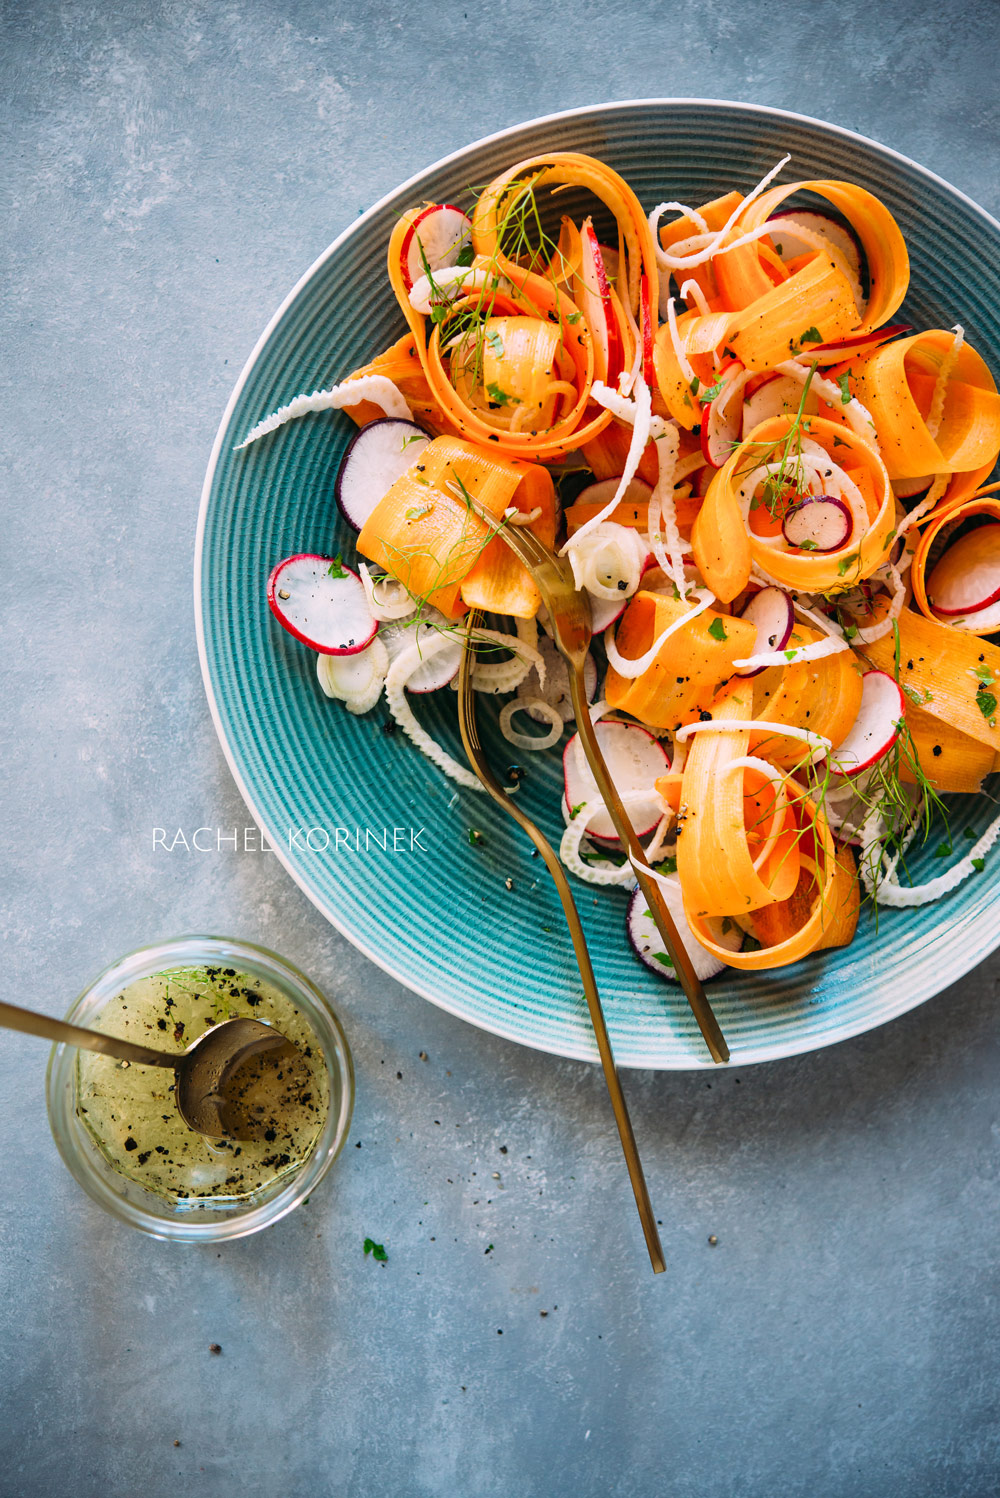 Rachel Korinek Food Photographer Melbourne | Carrot Radish Salad for Rocket + Beets